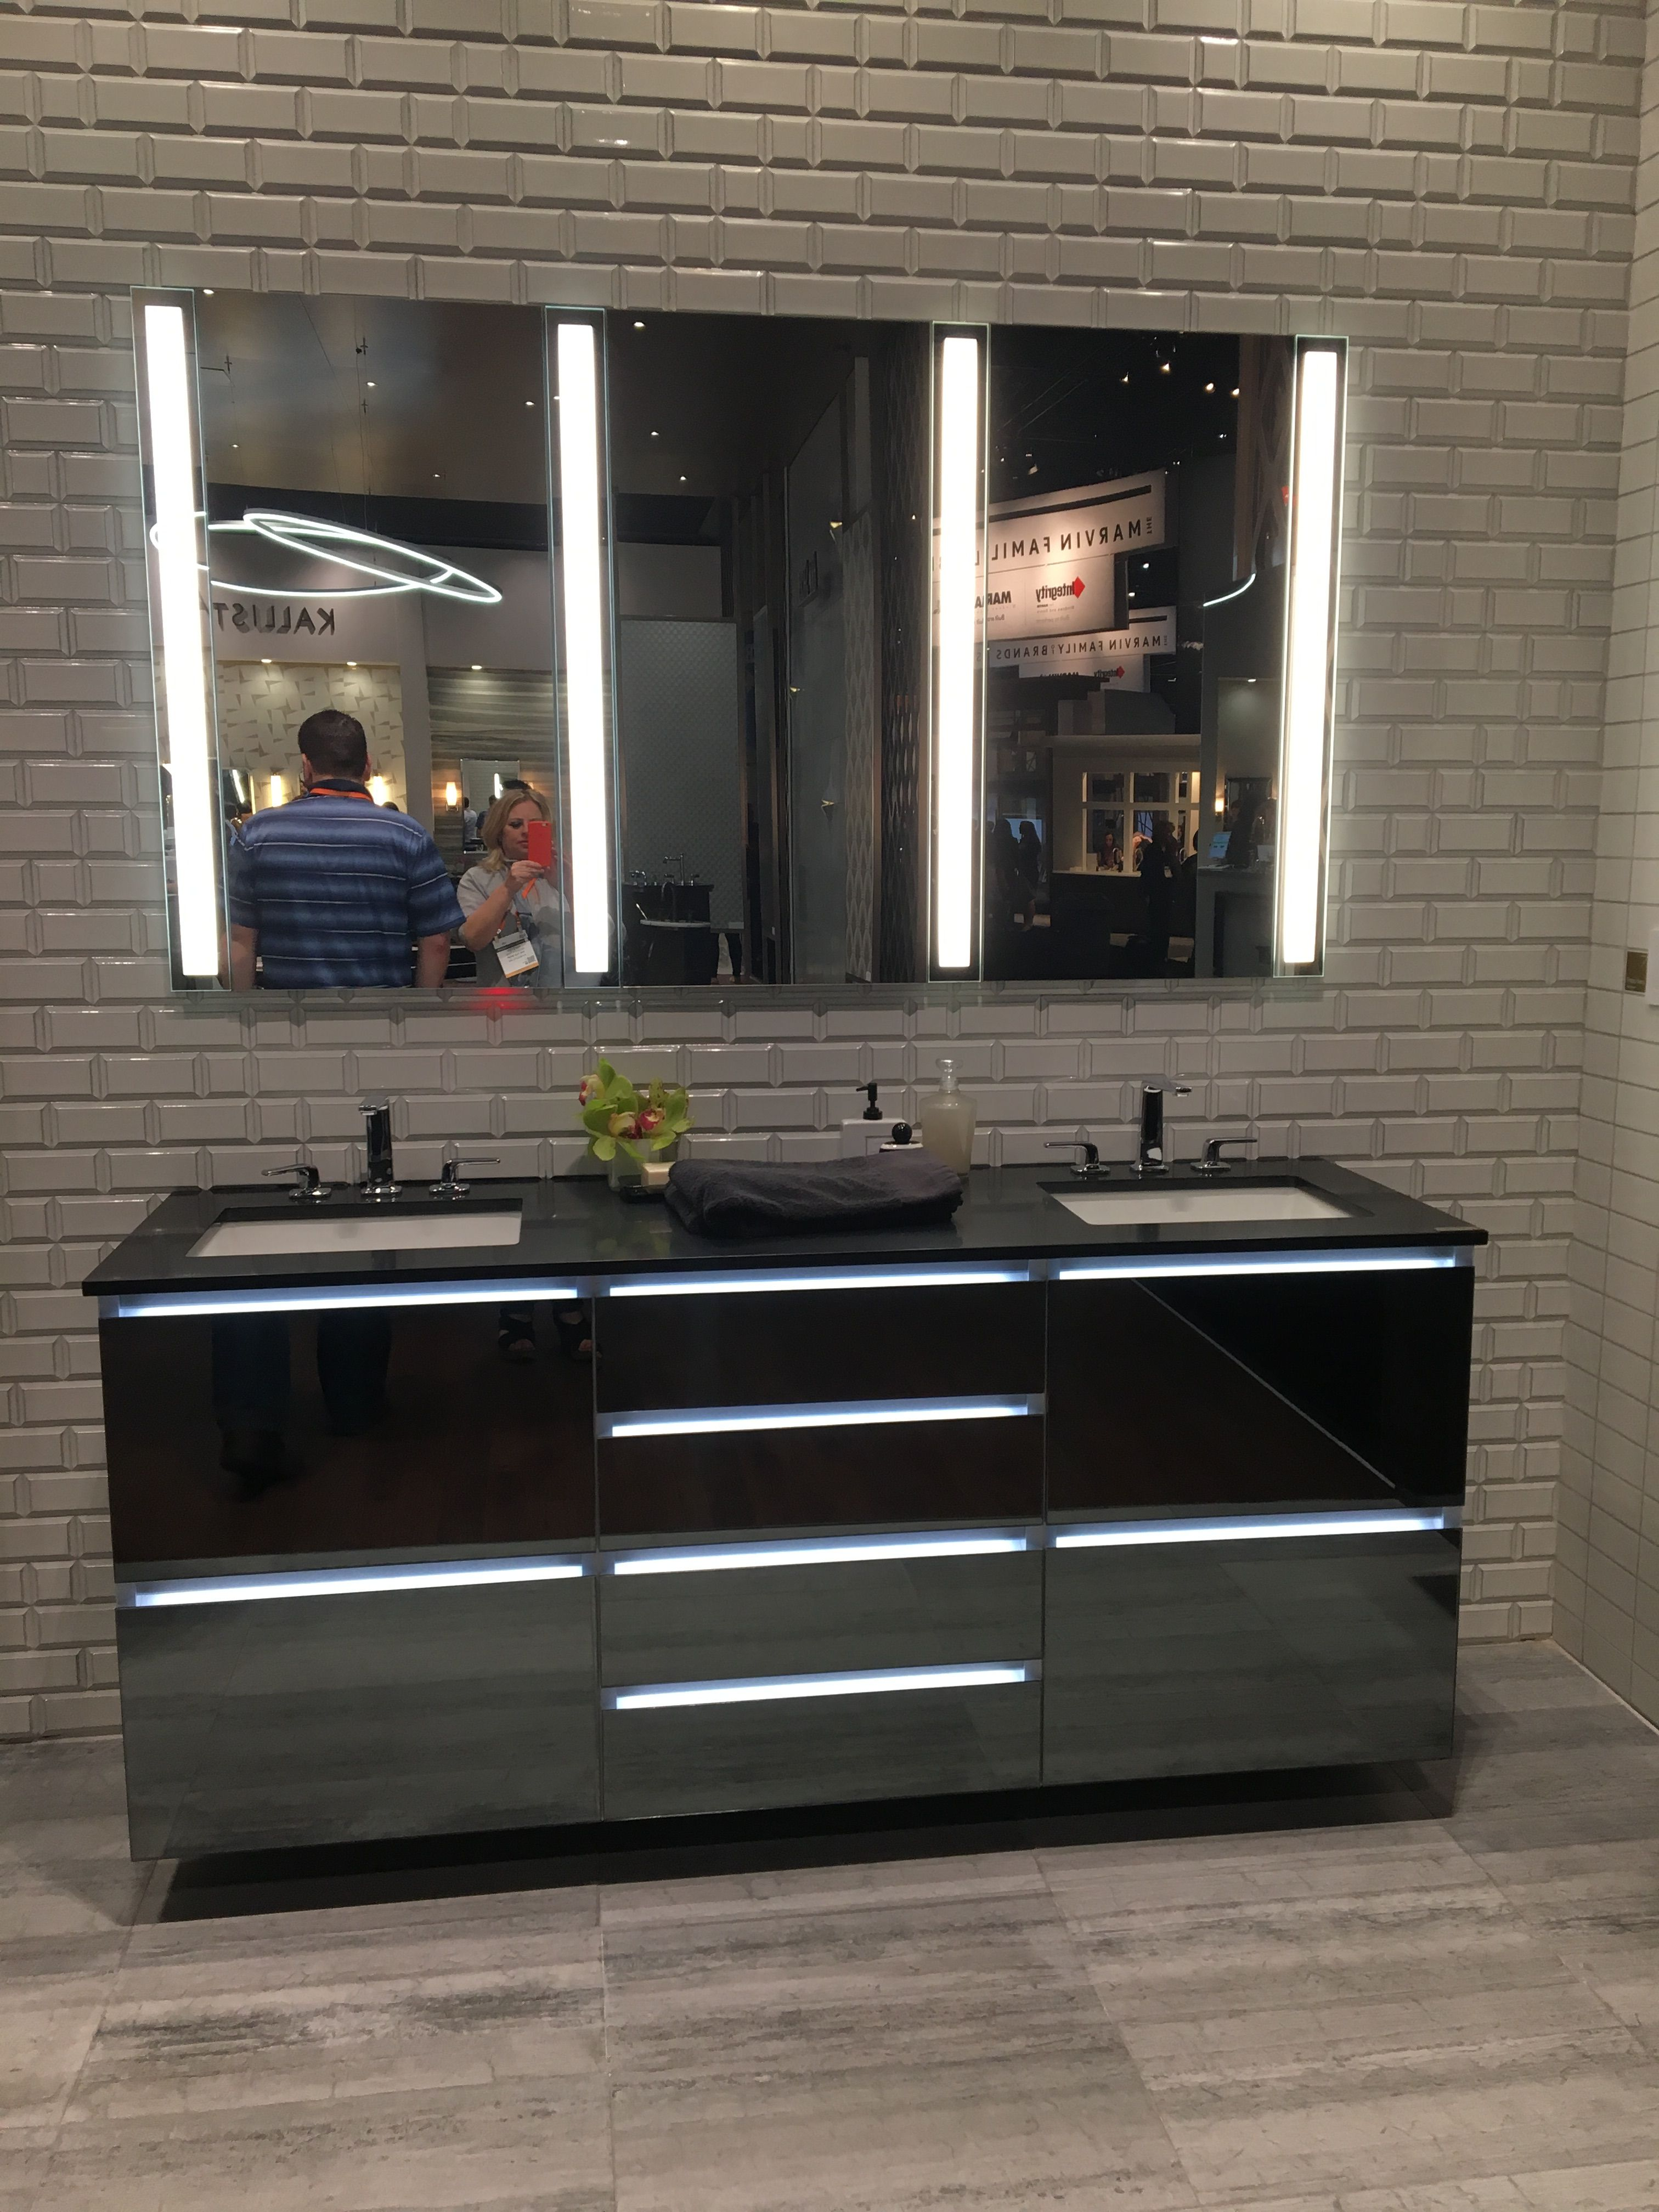 Pin by Kirsty Froelich on {KBIS 2017 orlando} | Bathroom ...